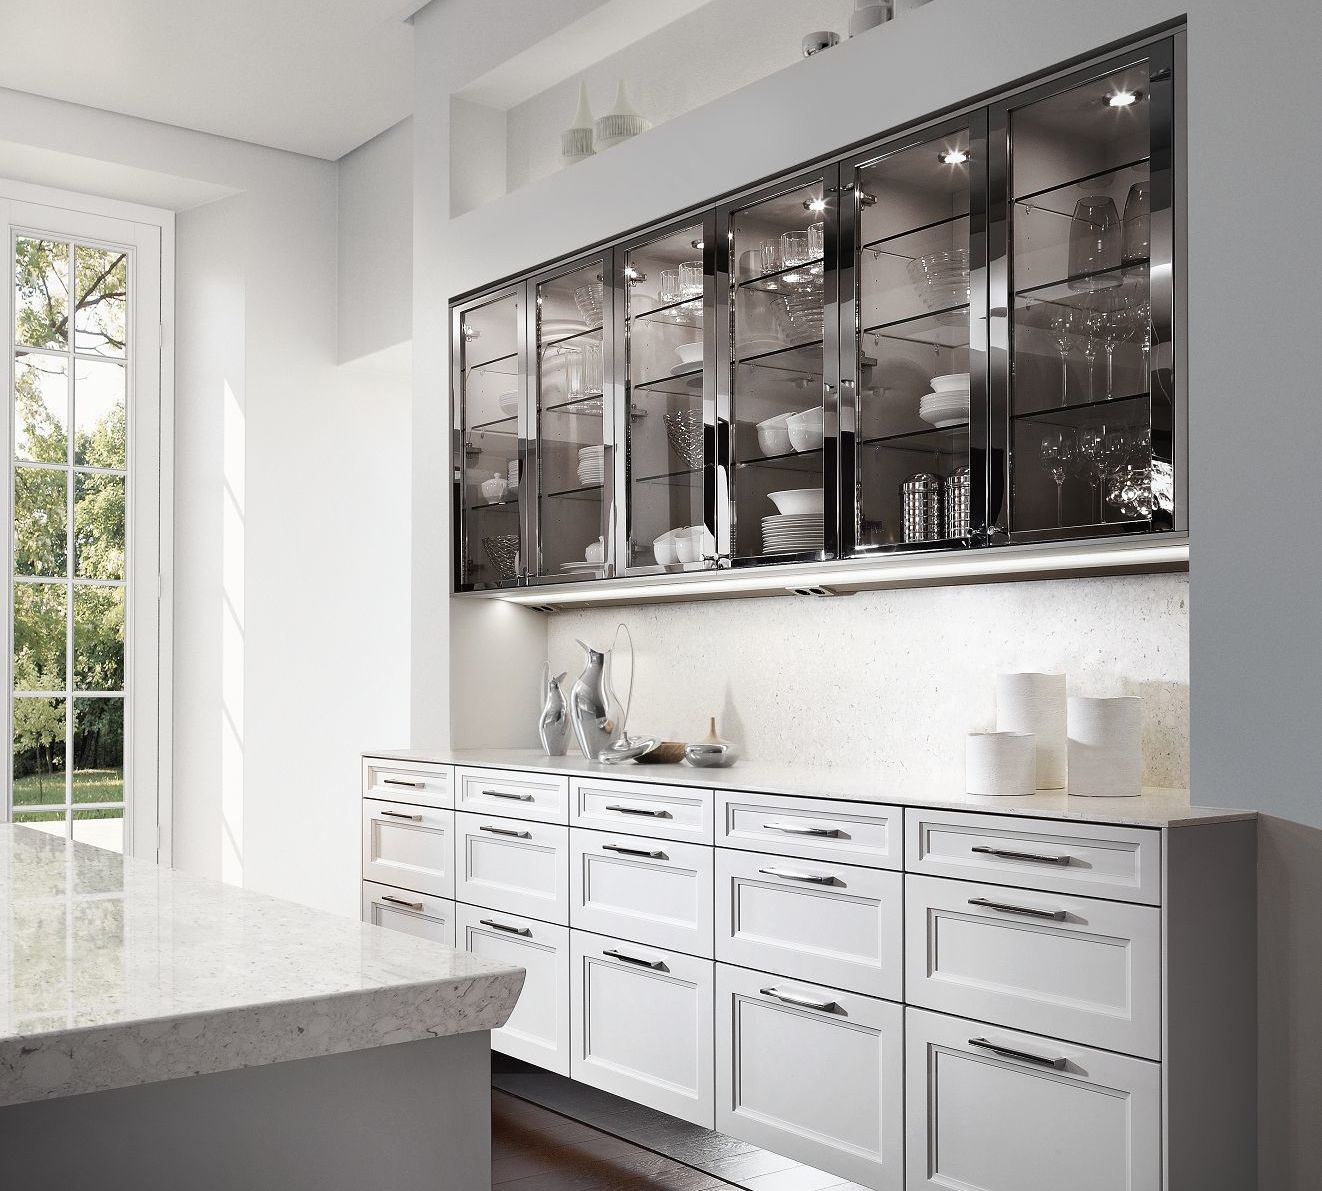 ... SieMatic Classic BeauxArts S2 In Lotus White With Glass Cabinets Framed  In Polished Nickel ...